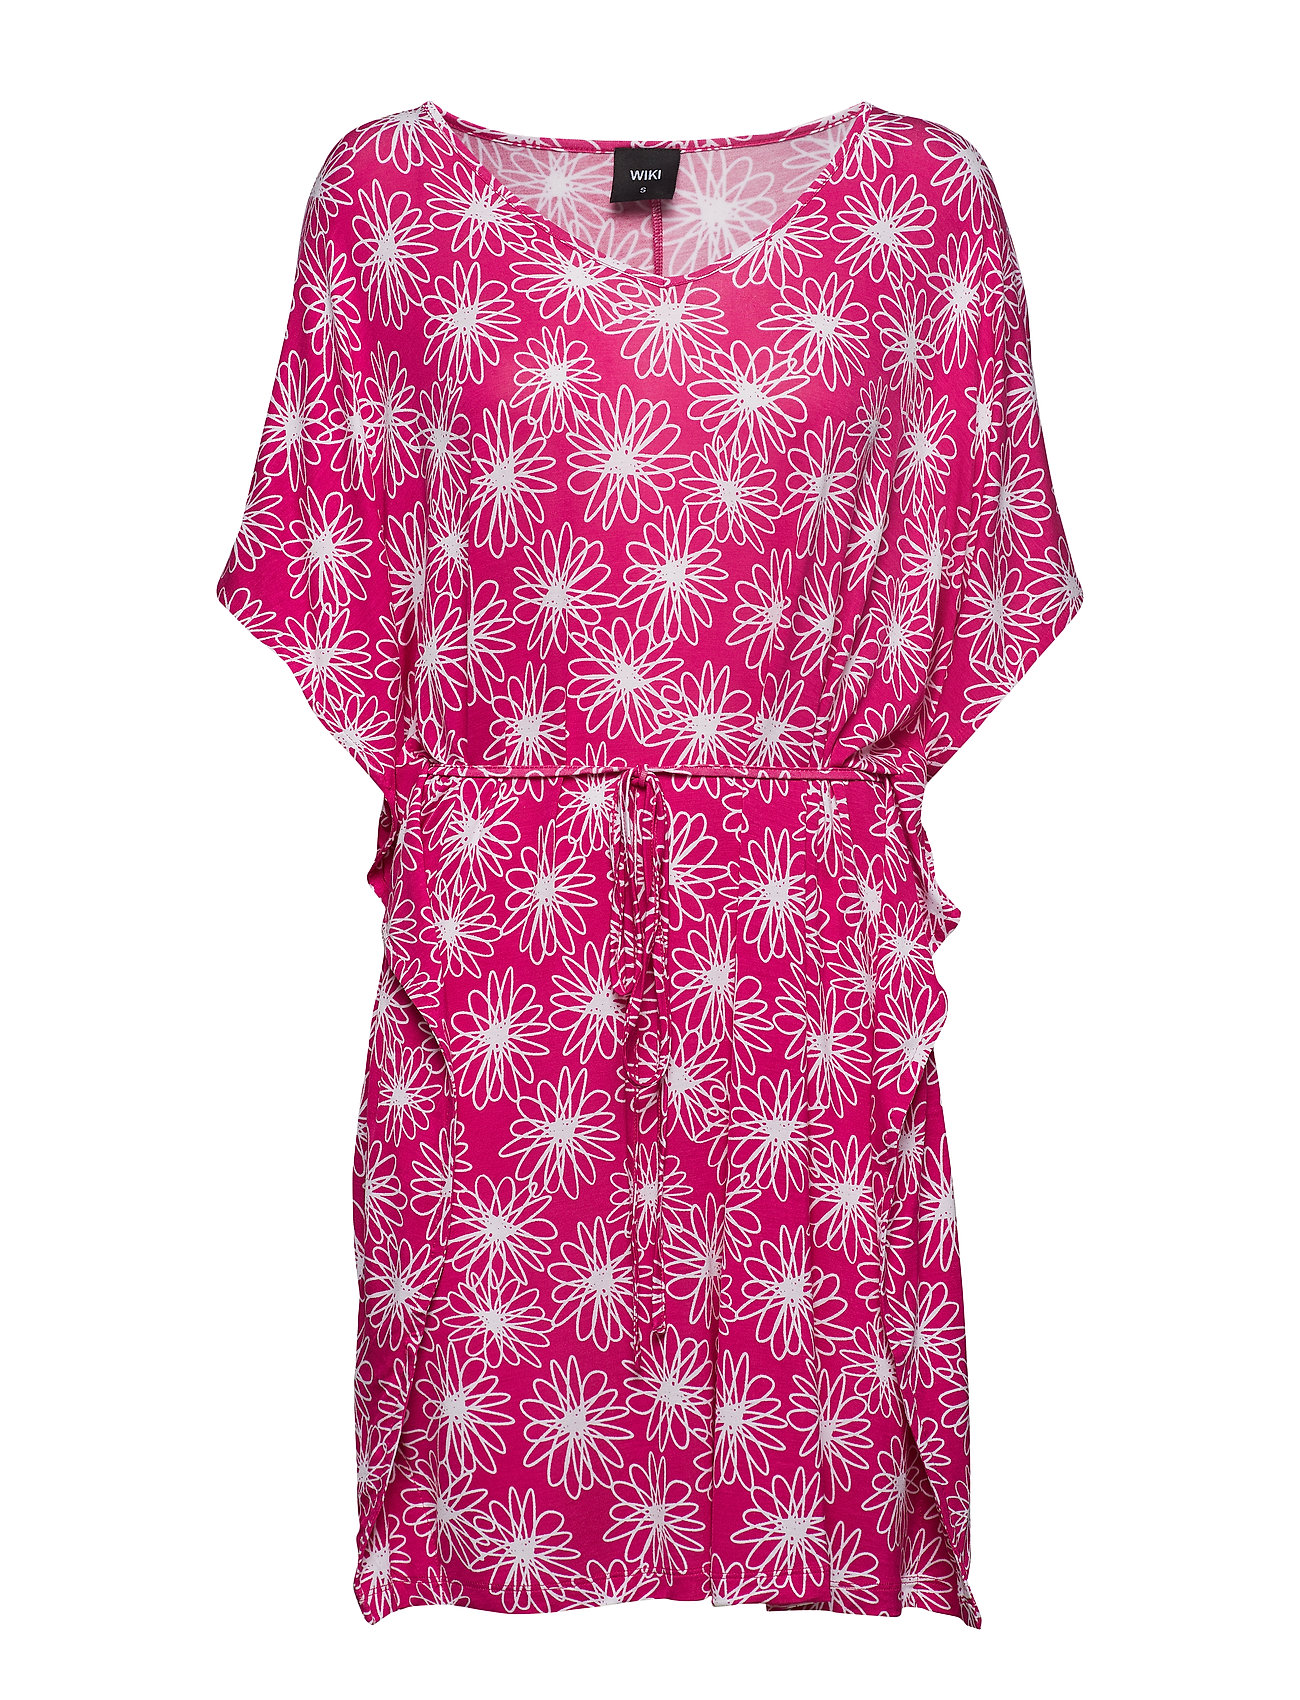 Wiki Bamboo beach poncho - FLORAL PINK